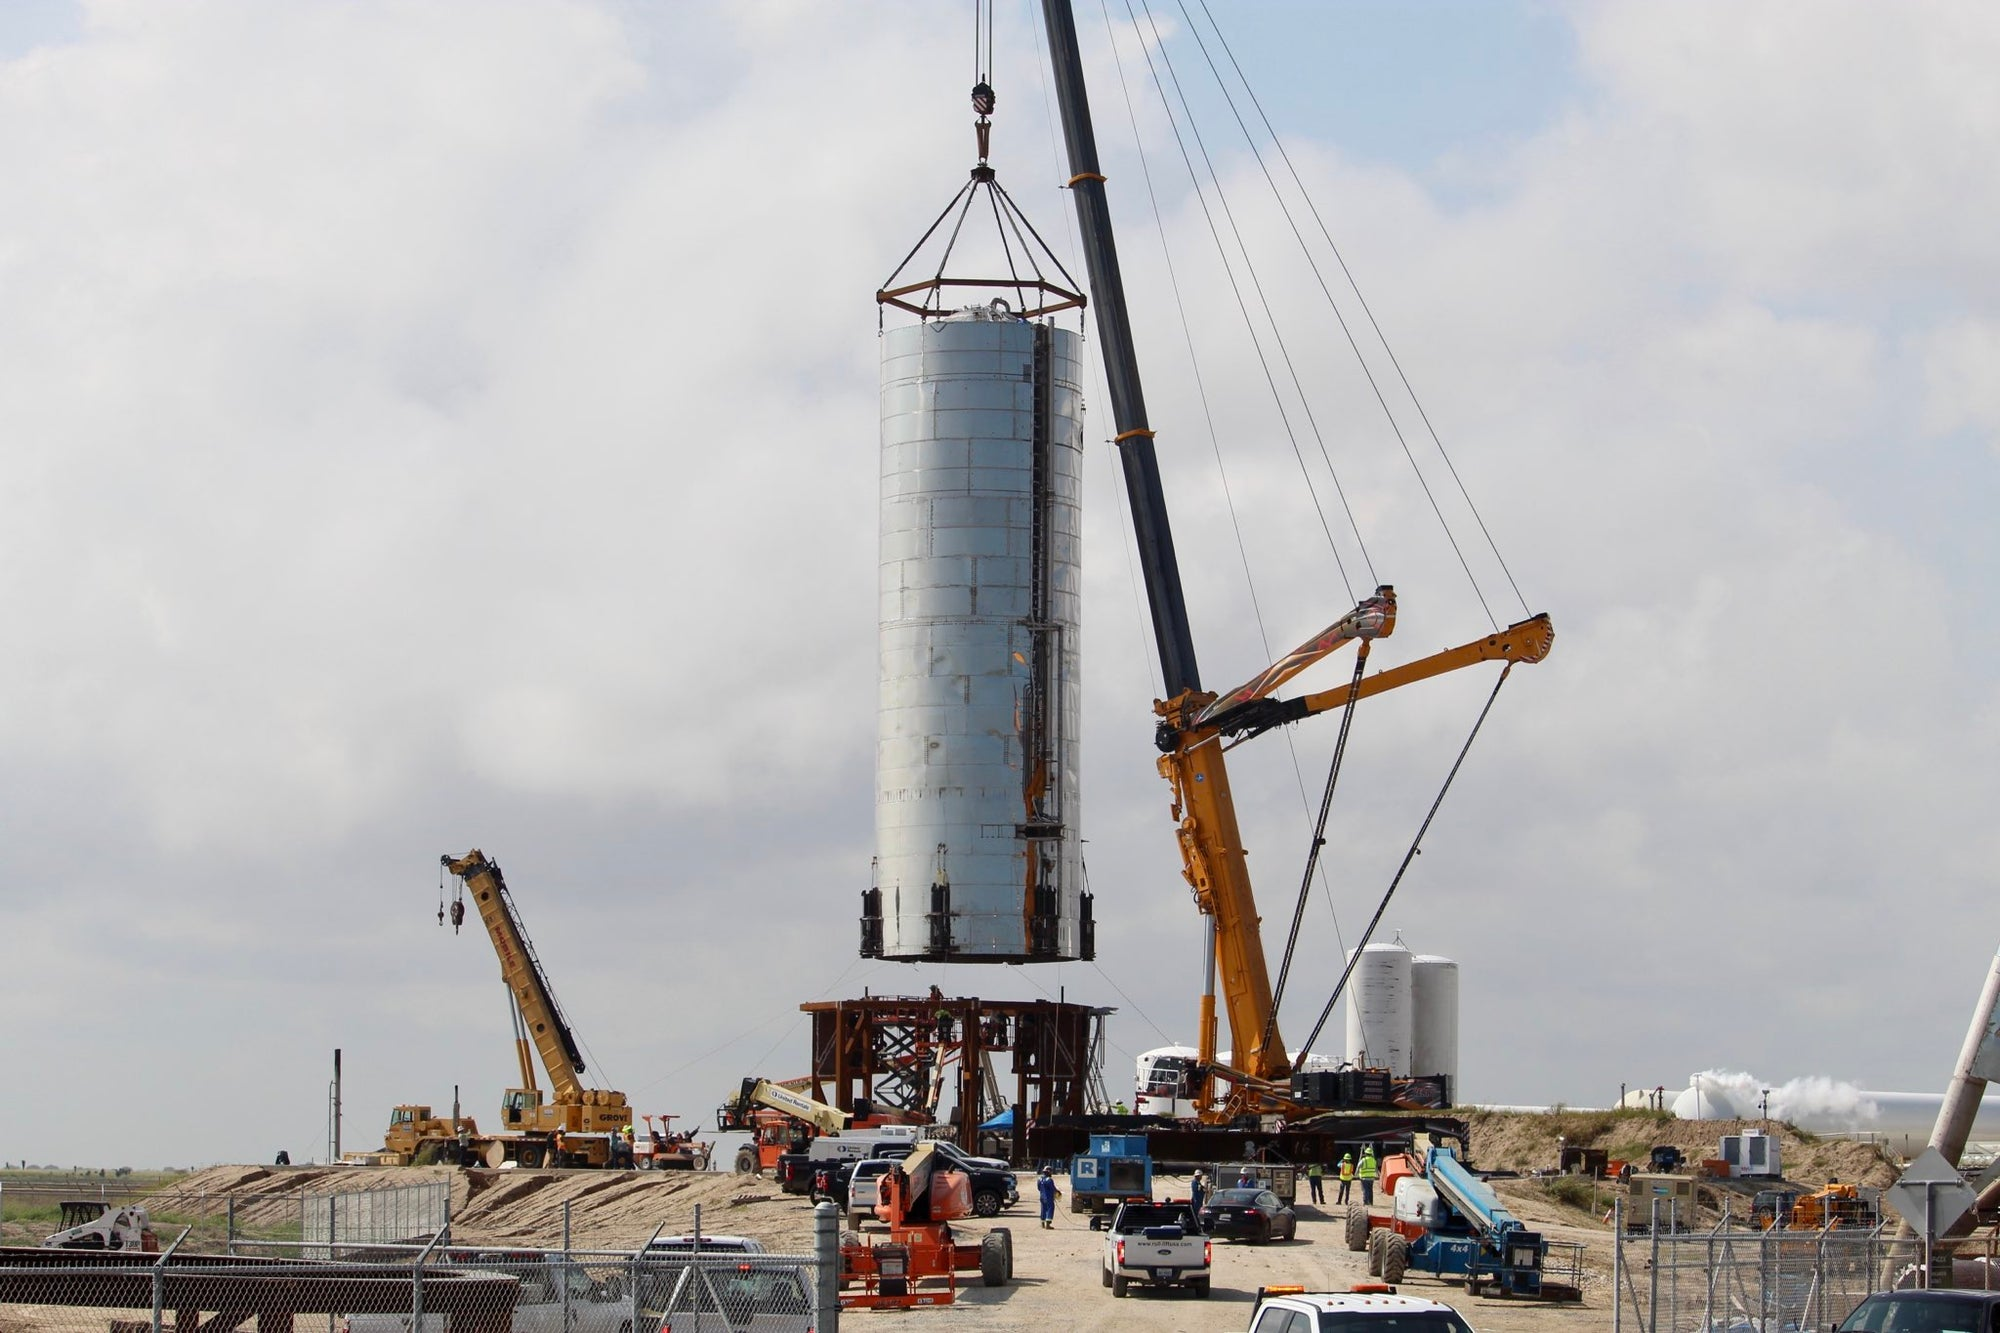 SpaceX Starship Mk1 moved to the launch pad in Texas